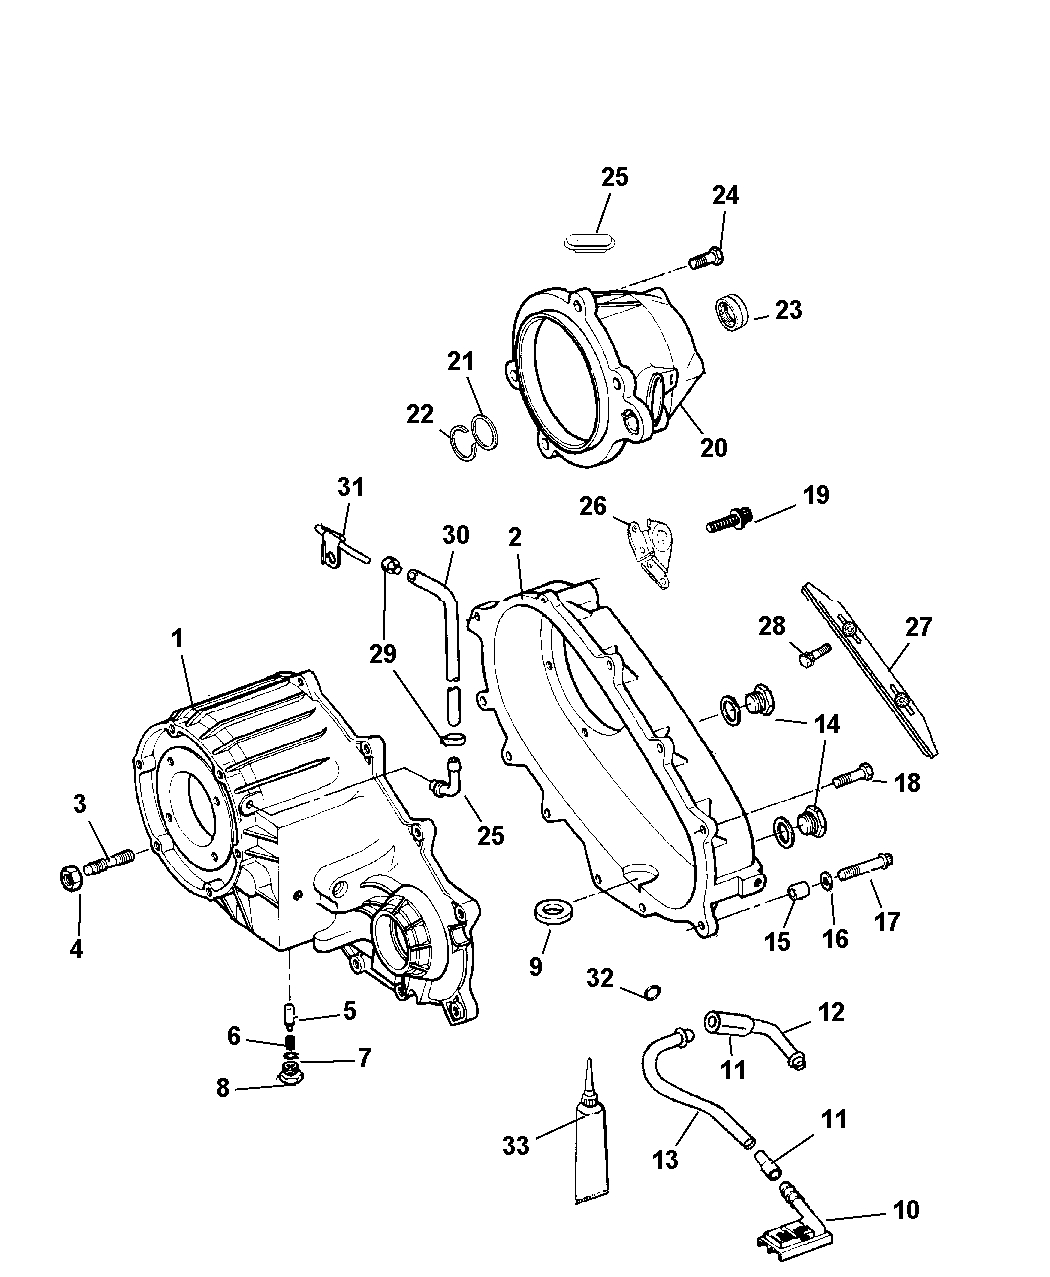 2004 ford f250 4 wheel drive front suspension diagram html